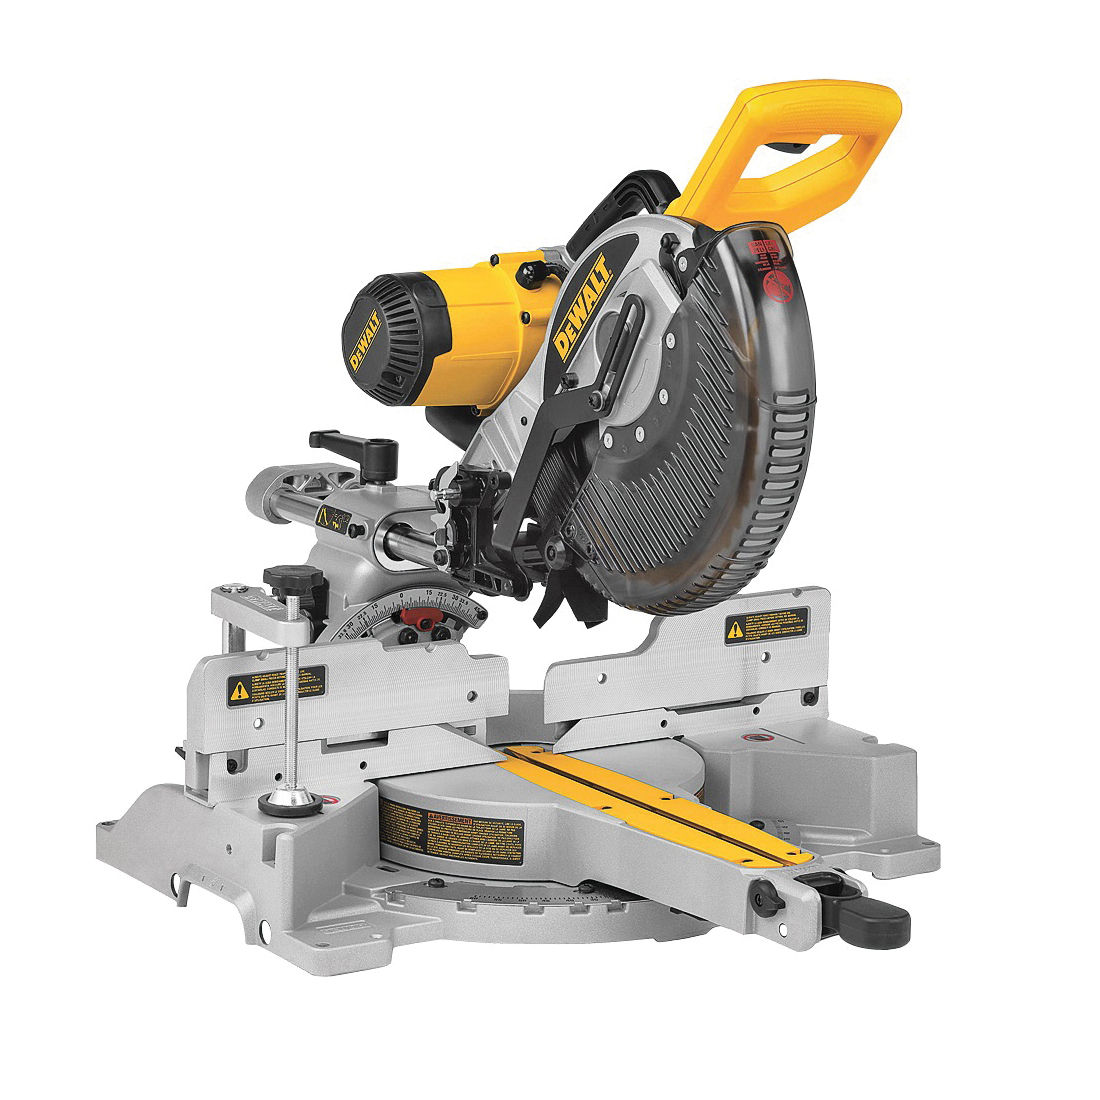 Picture of DeWALT DW717 Miter Saw, 120 V, 15 A, 10 in Dia Blade, 2 x 12 in at 45 deg, 2 x 12 in at 90 deg Cutting Capacity